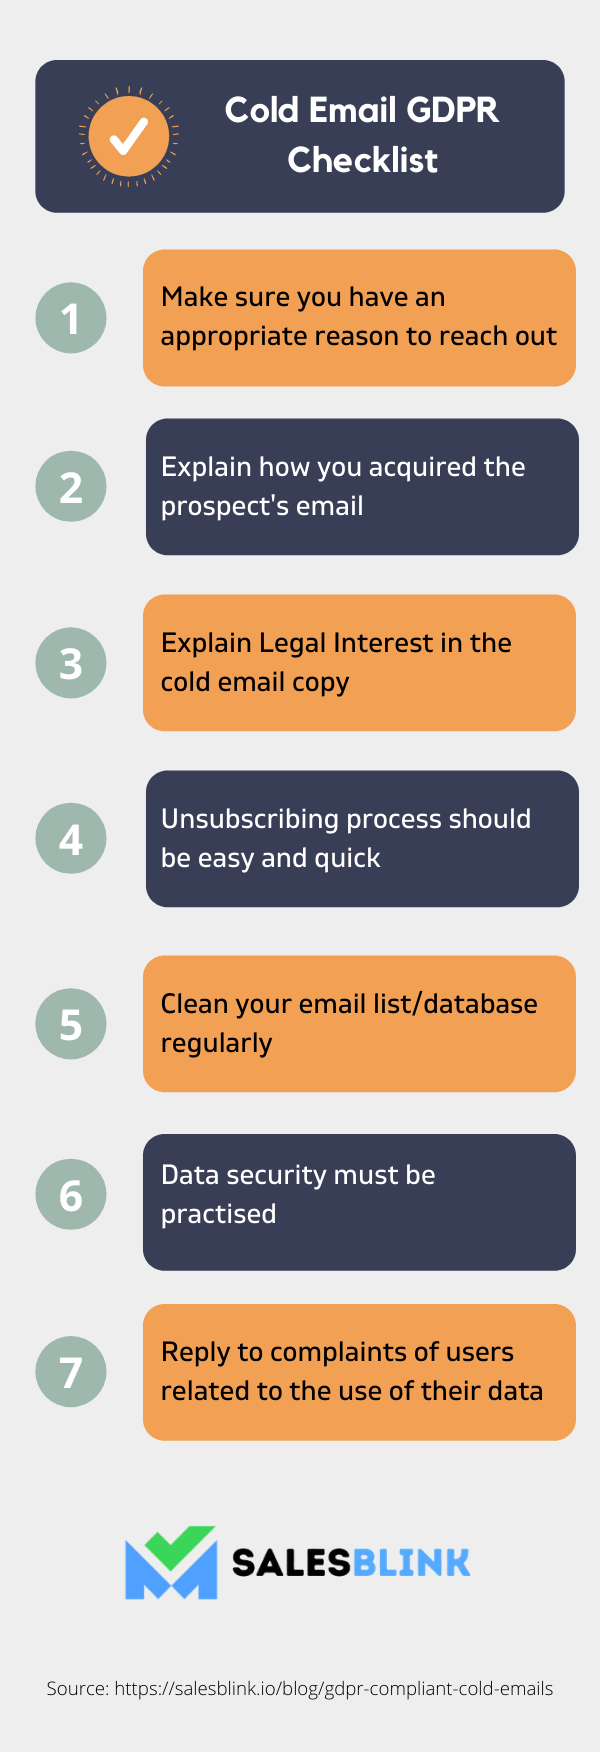 Infographic on the ways to stay GDPR complaint while sending cold emails